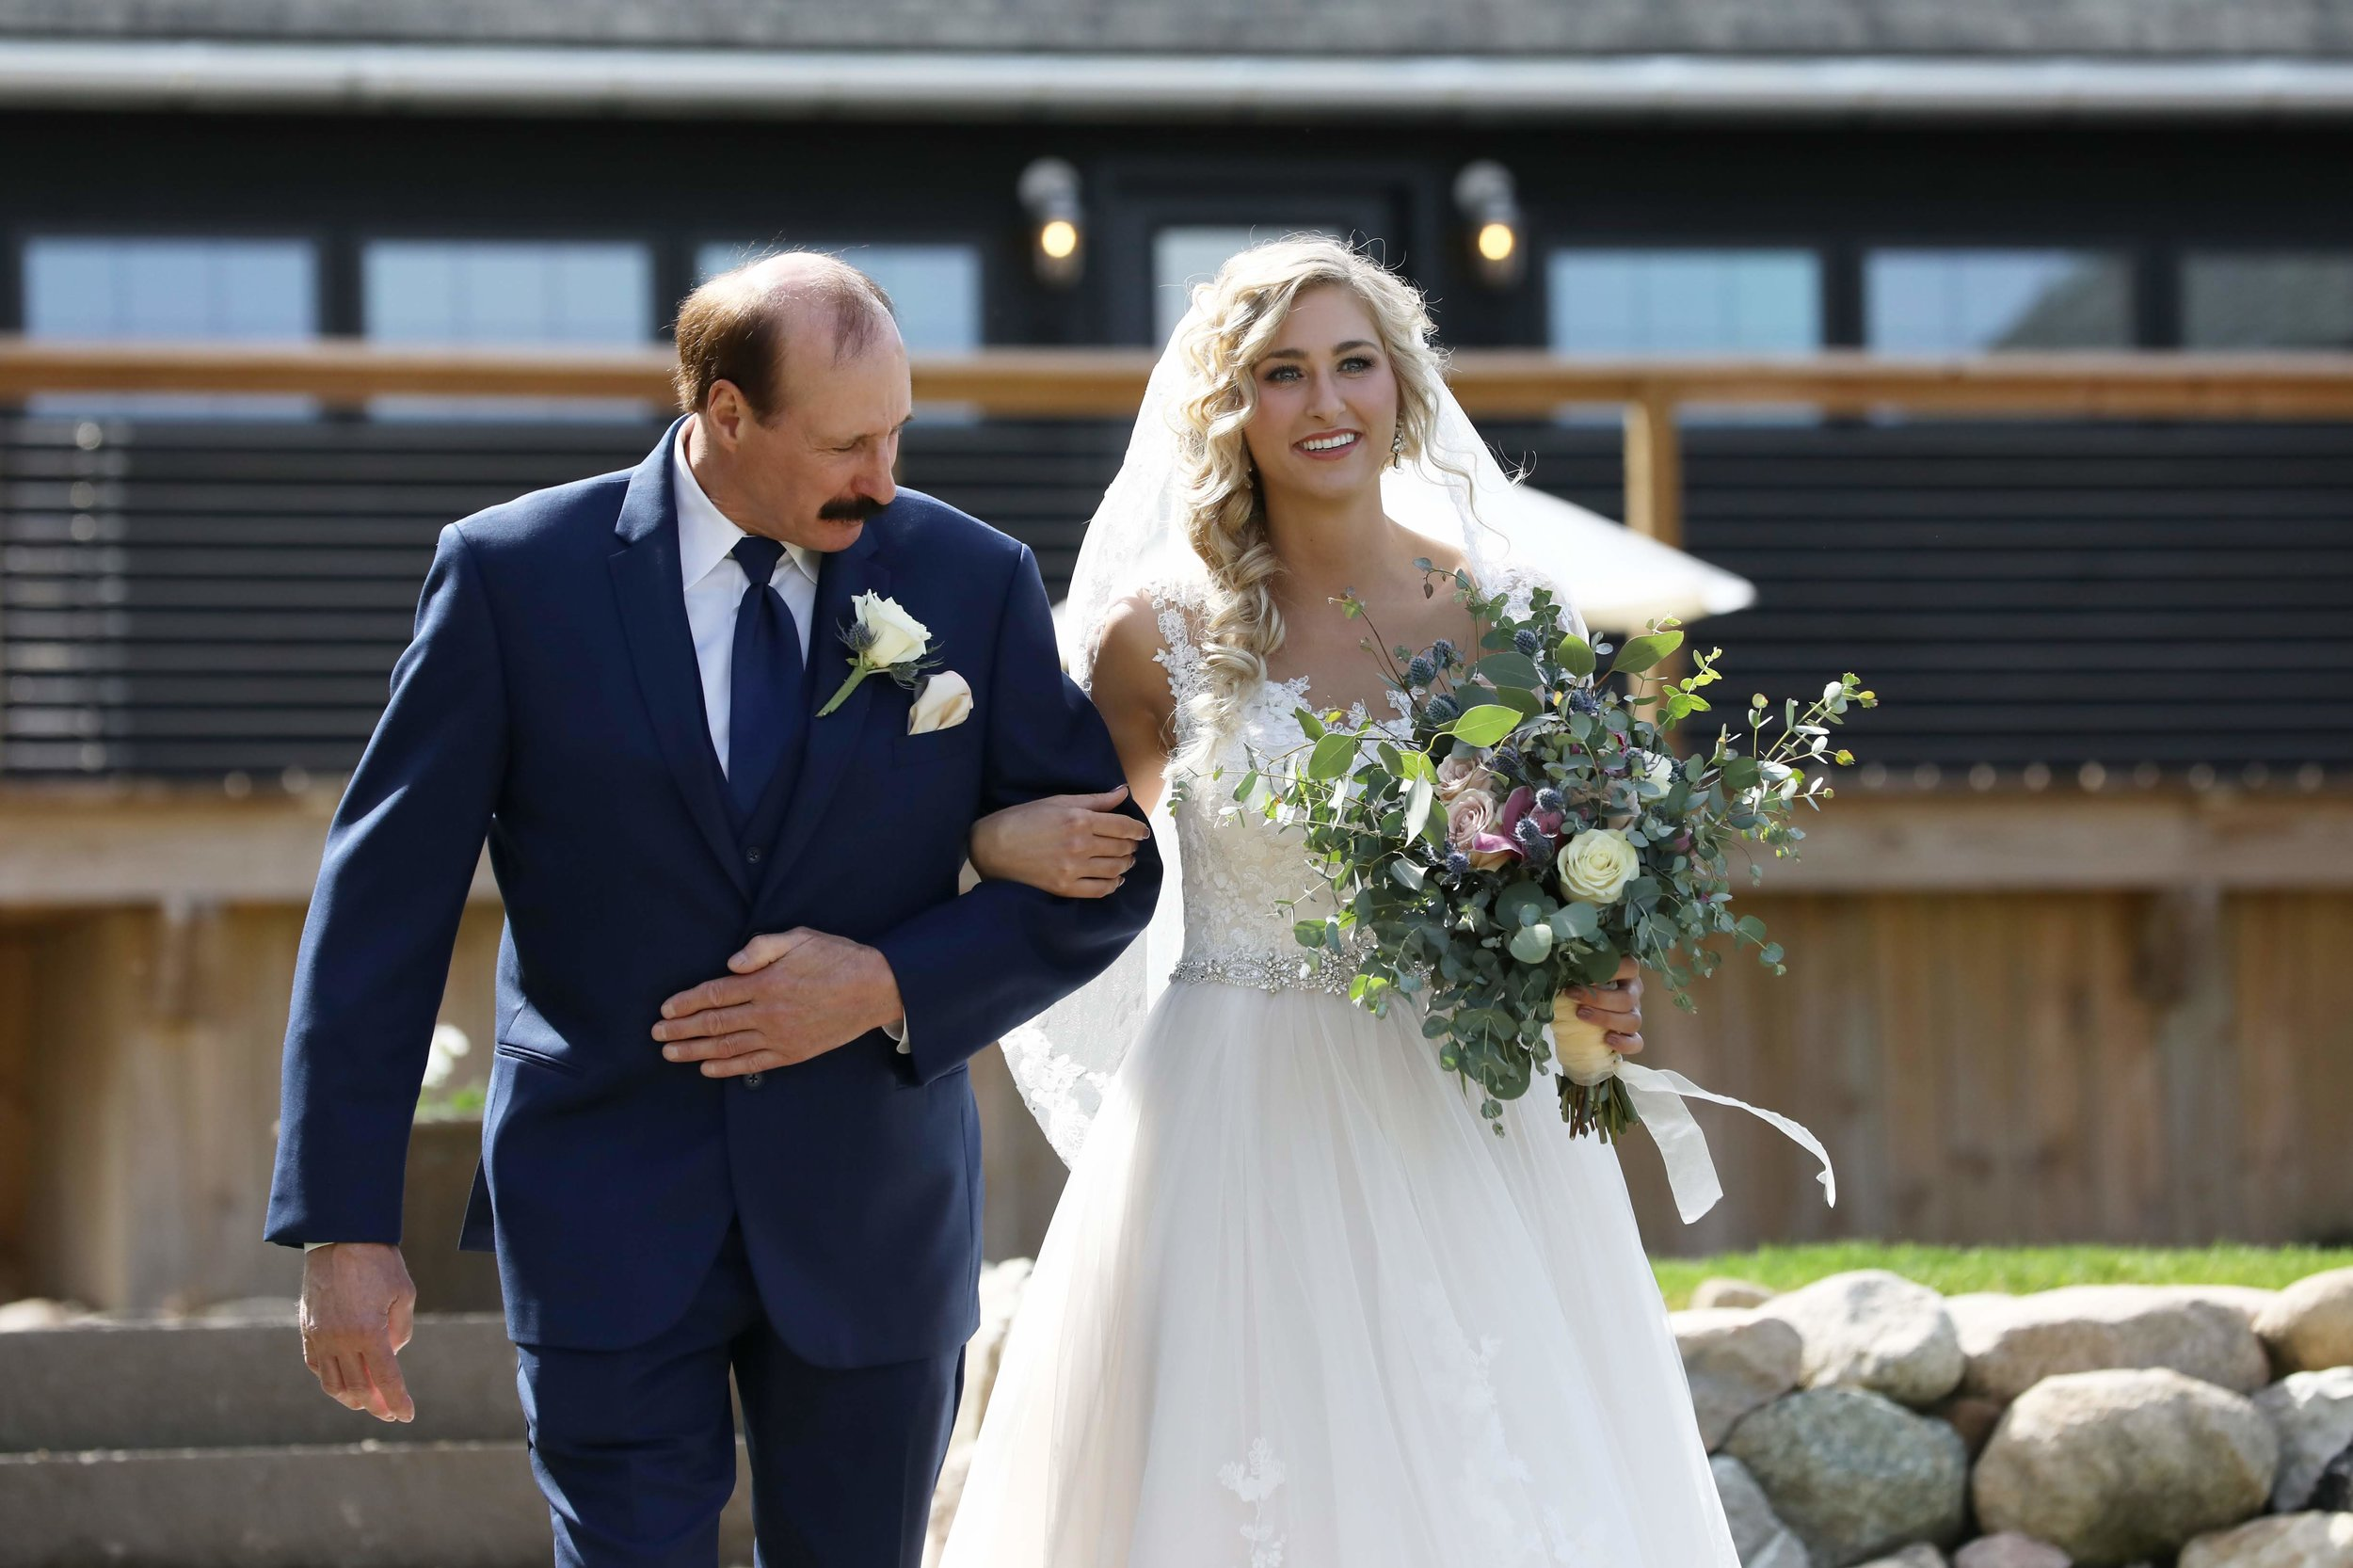 Stephanie surprised Henry with a meaningful song when she walked down the aisle.